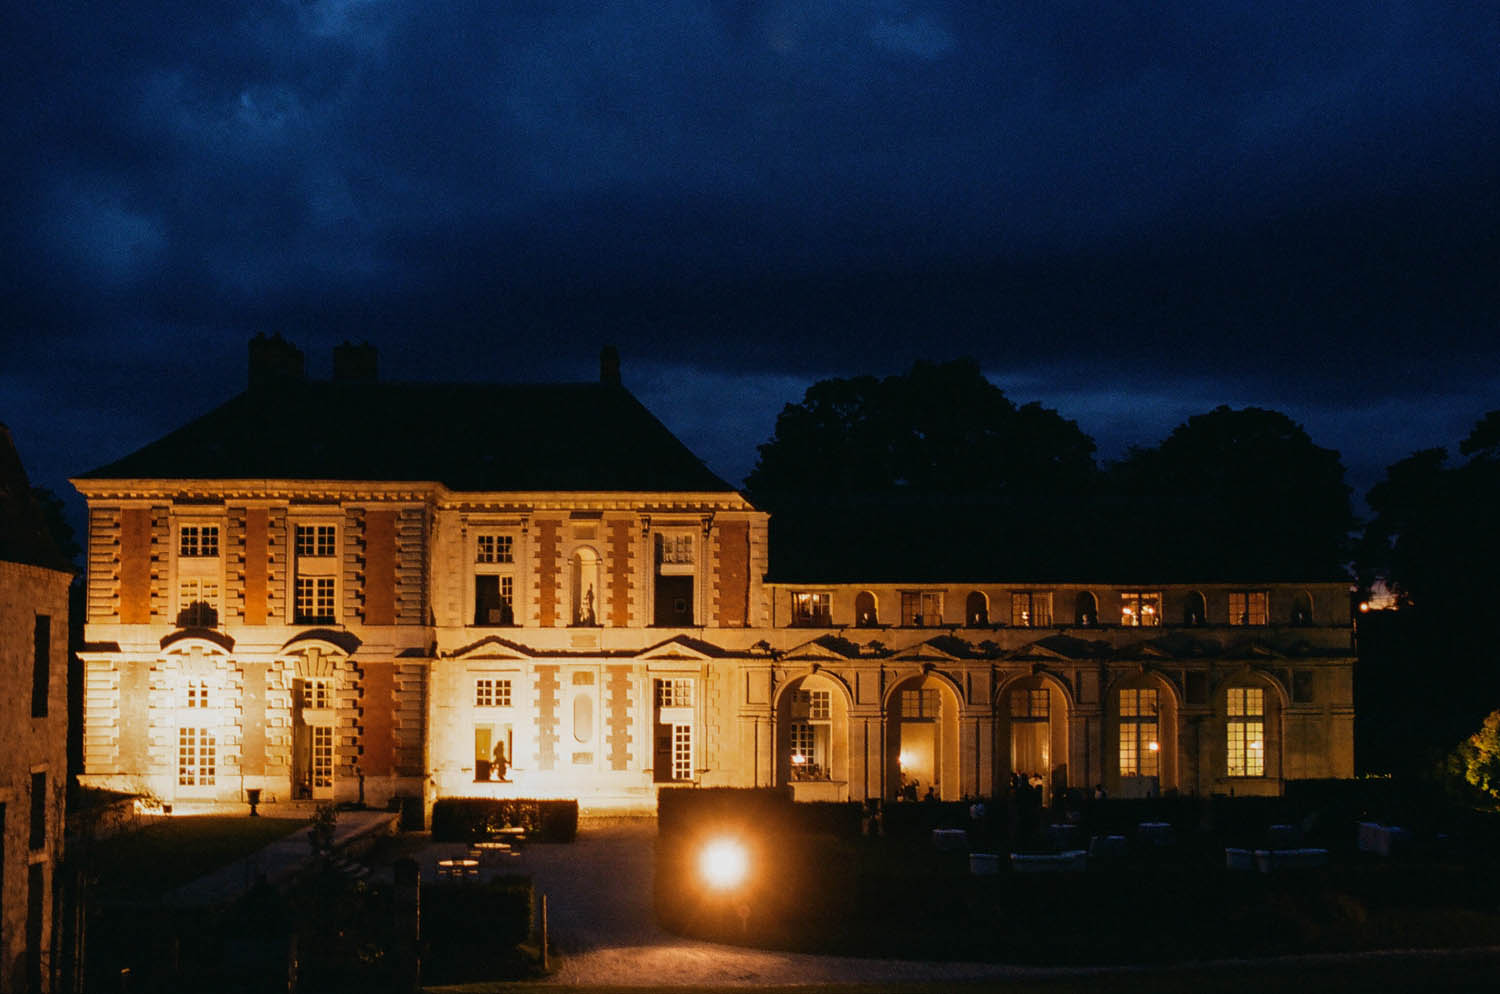 chateau de vallery at night